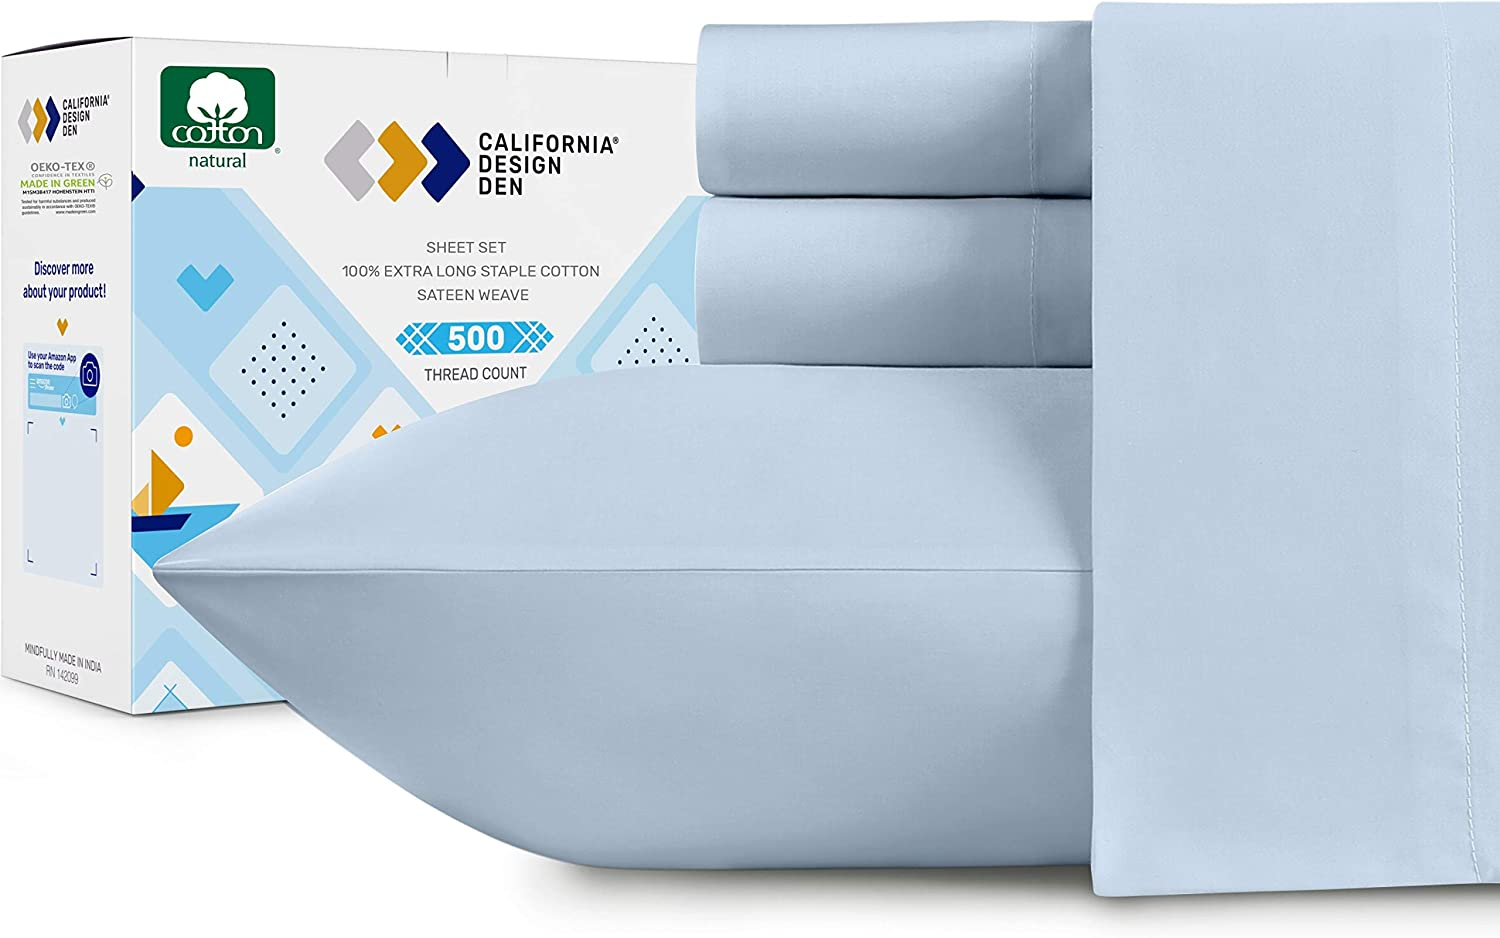 Full Cotton Sateen Sheet Set - 500 Thread Count Light Blue Sheets, Pure Cotton 4 Piece Luxury Bedding, Wrinkle Resistant Comfortable Sheets, Deep Pocket Fits Mattress 16 Inches